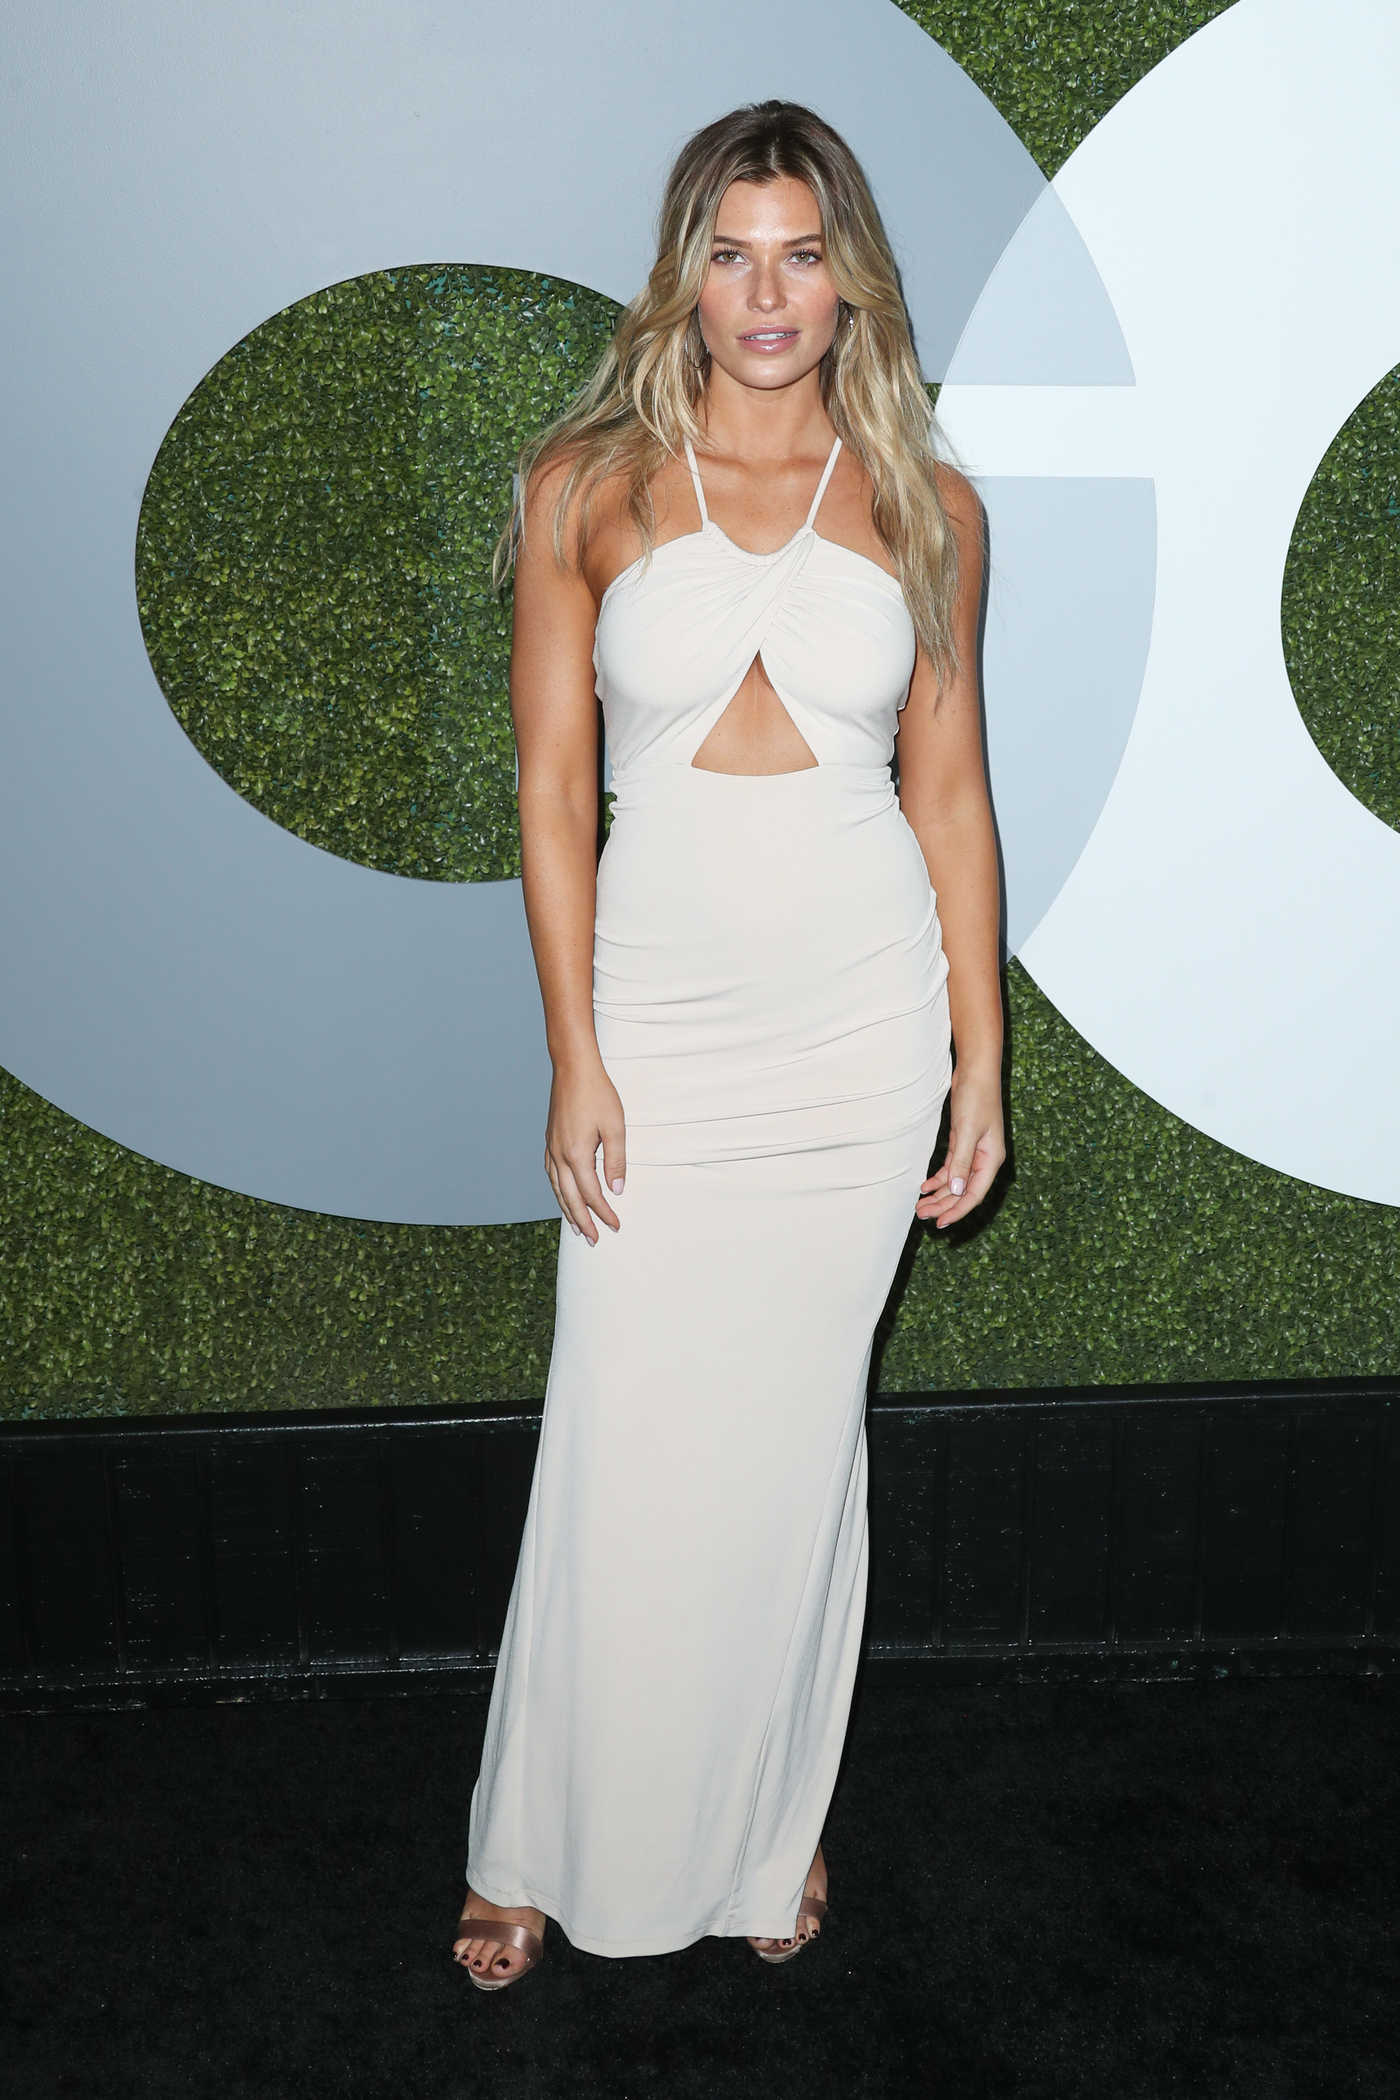 Samantha Hoopes at the 2016 GQ Men of the Year Awards in West Hollywood 12/08/2016